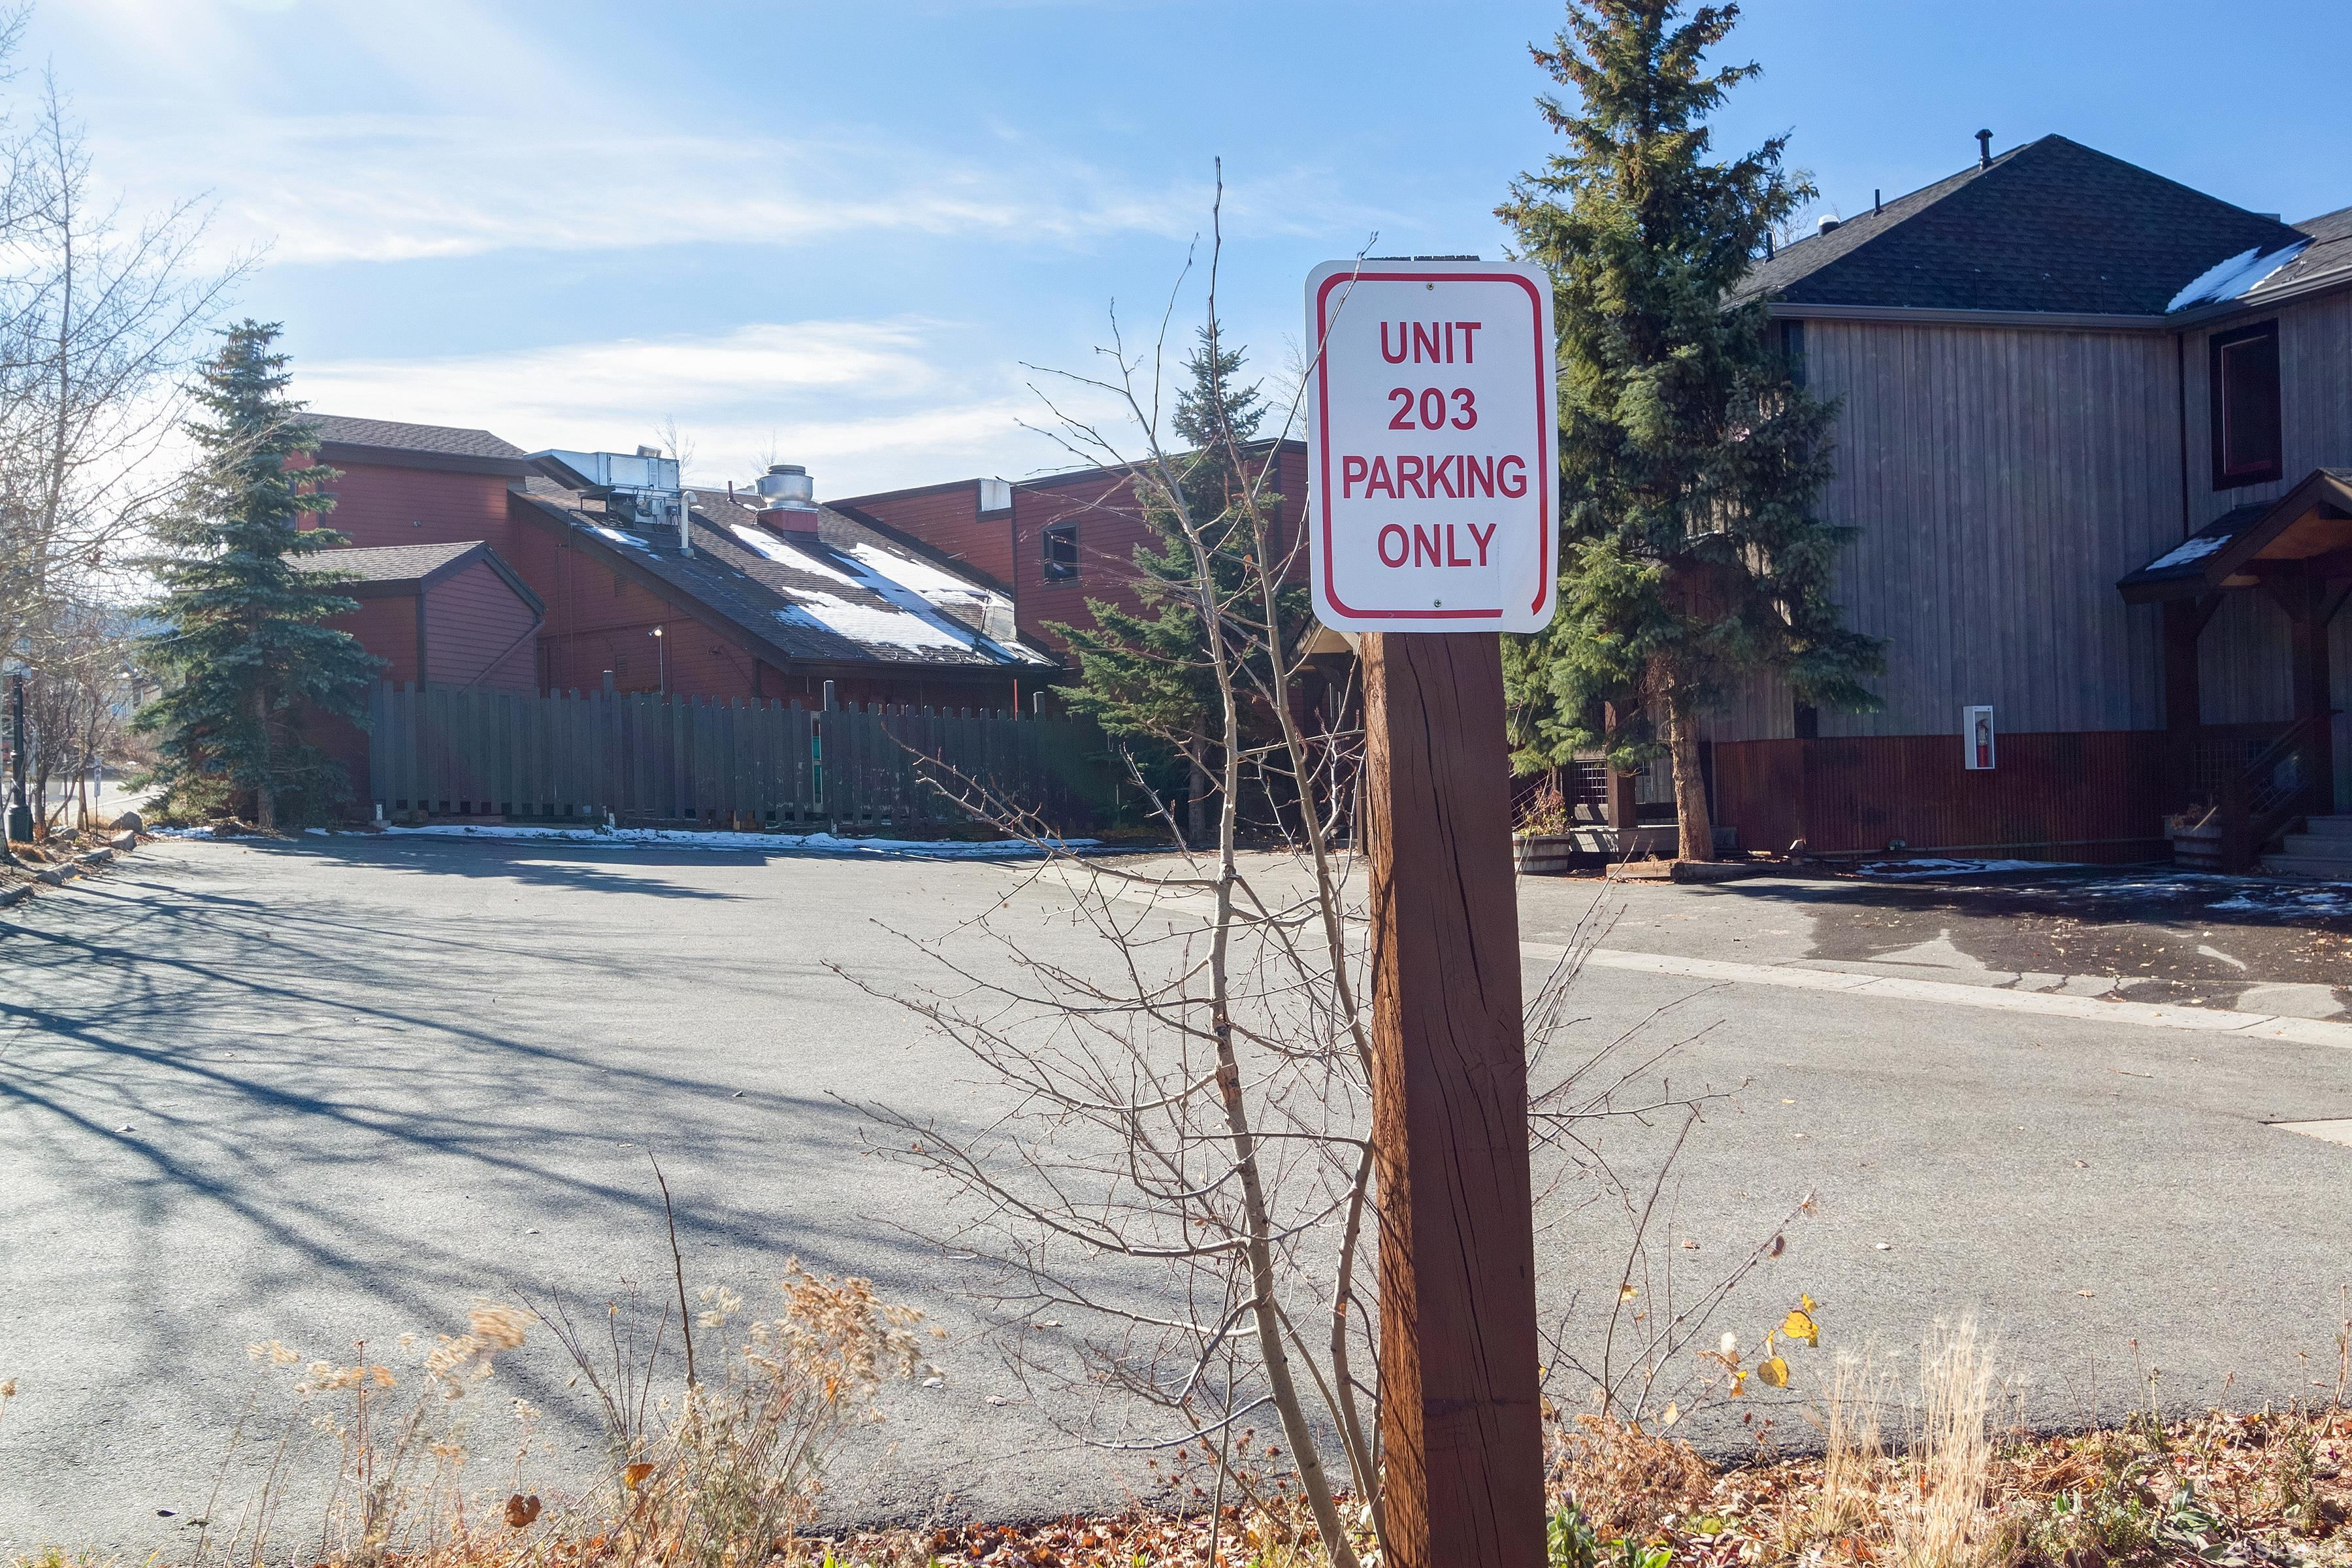 Alpine 203 Assigned outdoor parking spot for 2 vehicles